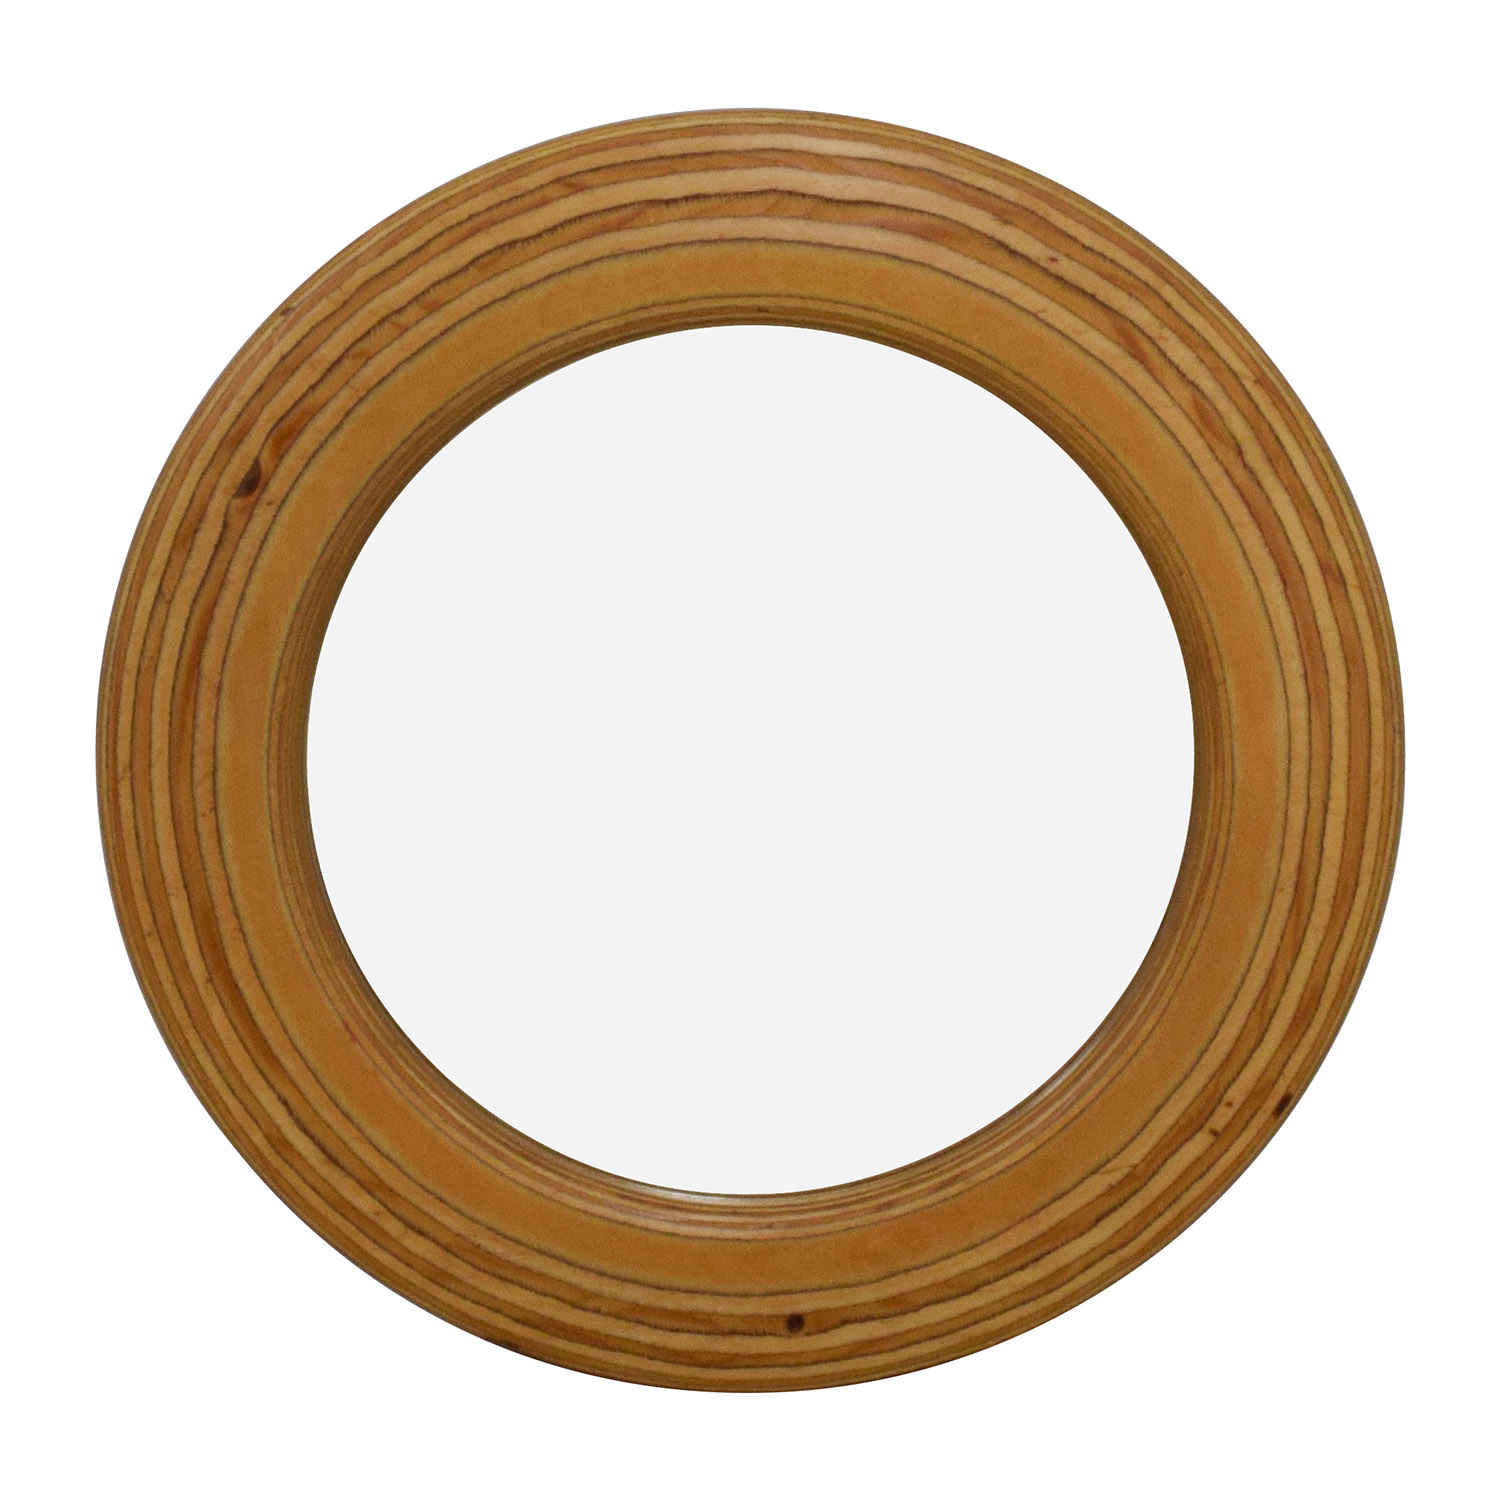 buy Round Rustic 21 Wooden Mirror Decor